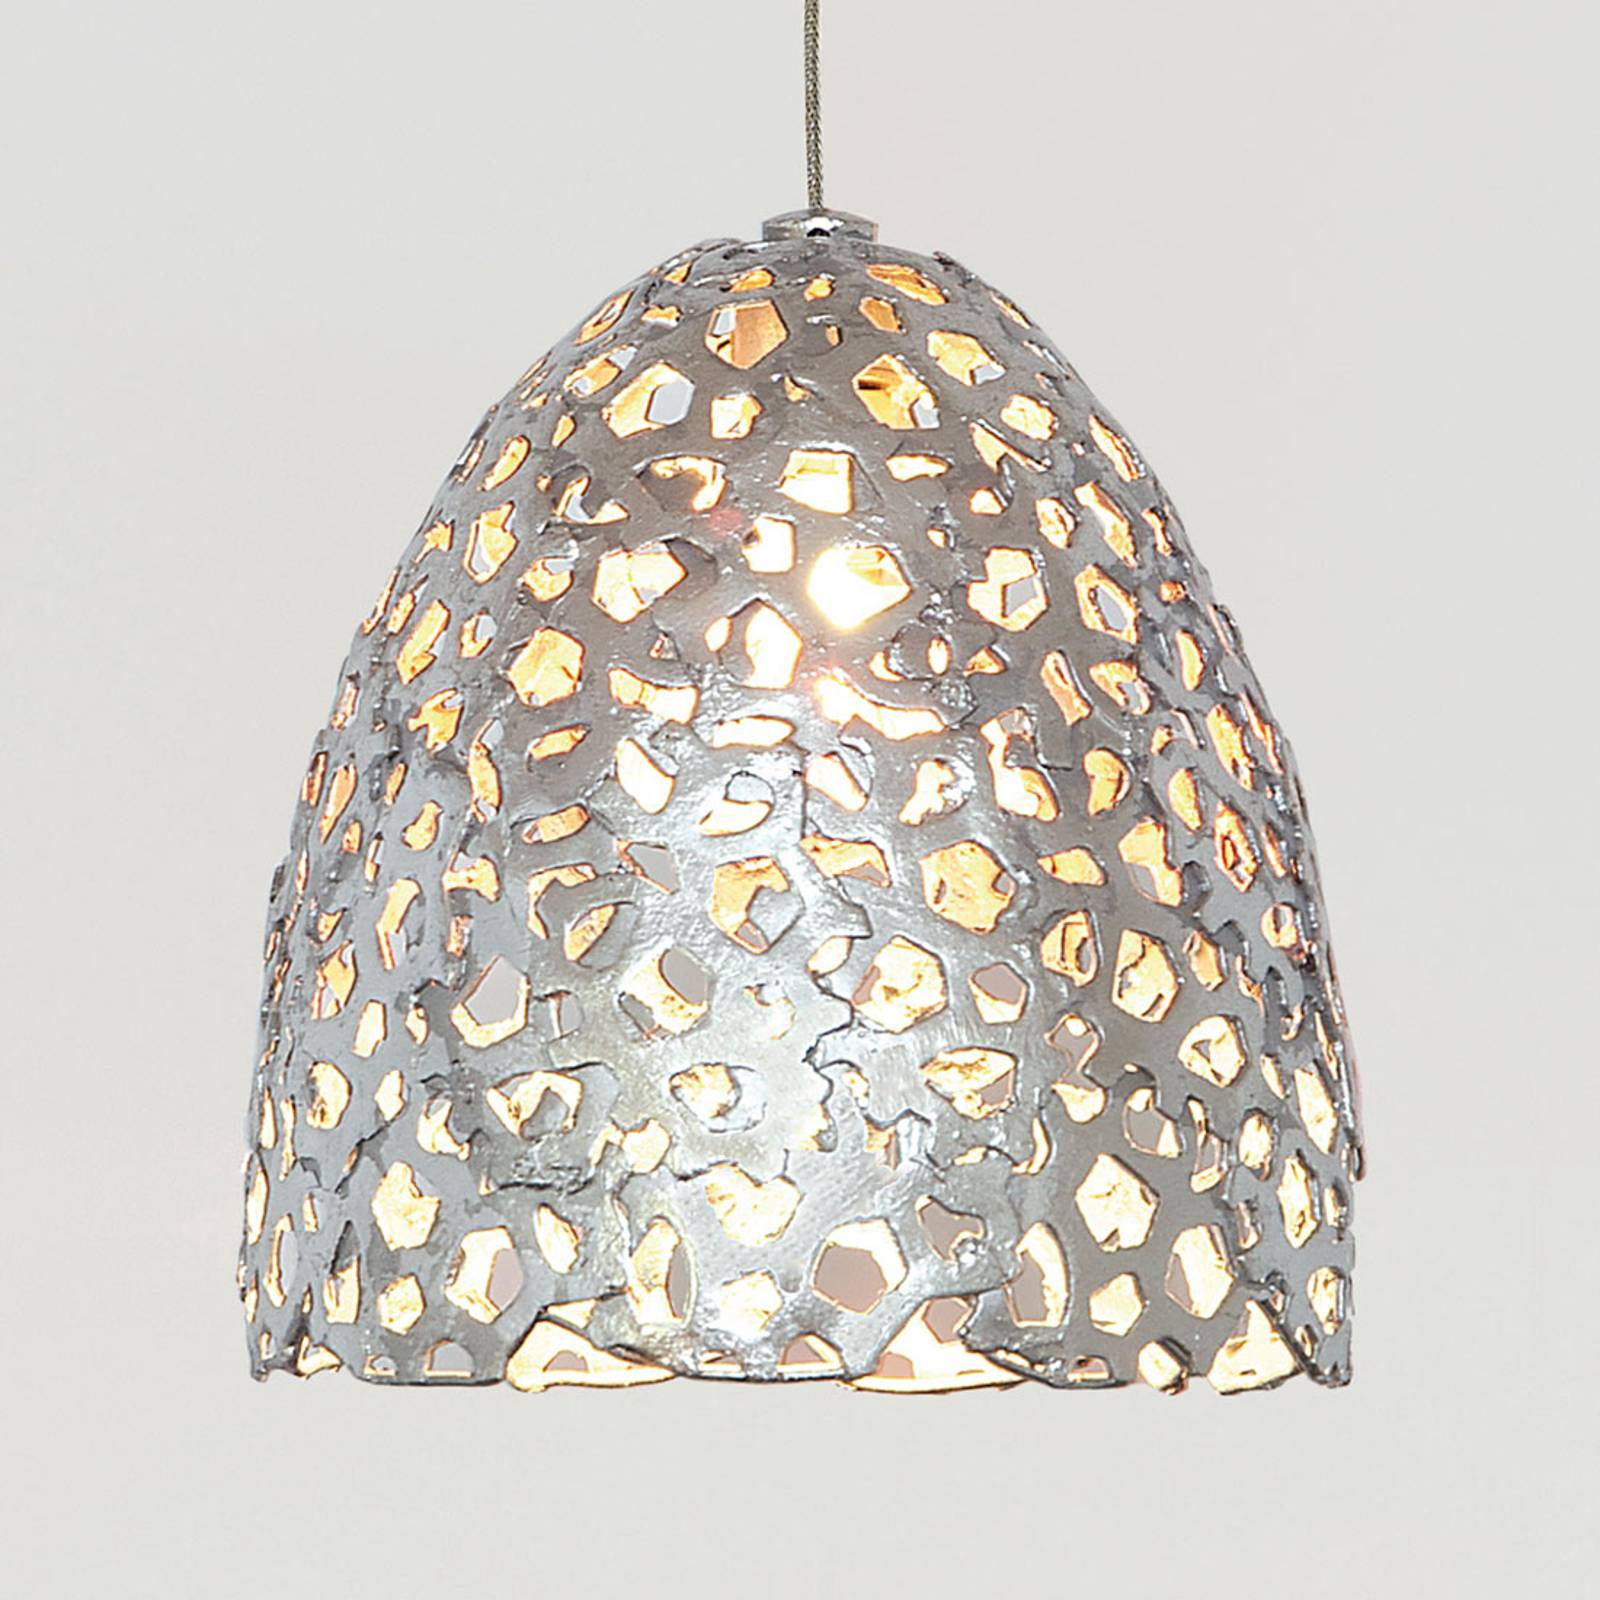 Hanglamp Lily Piccolo, zilver